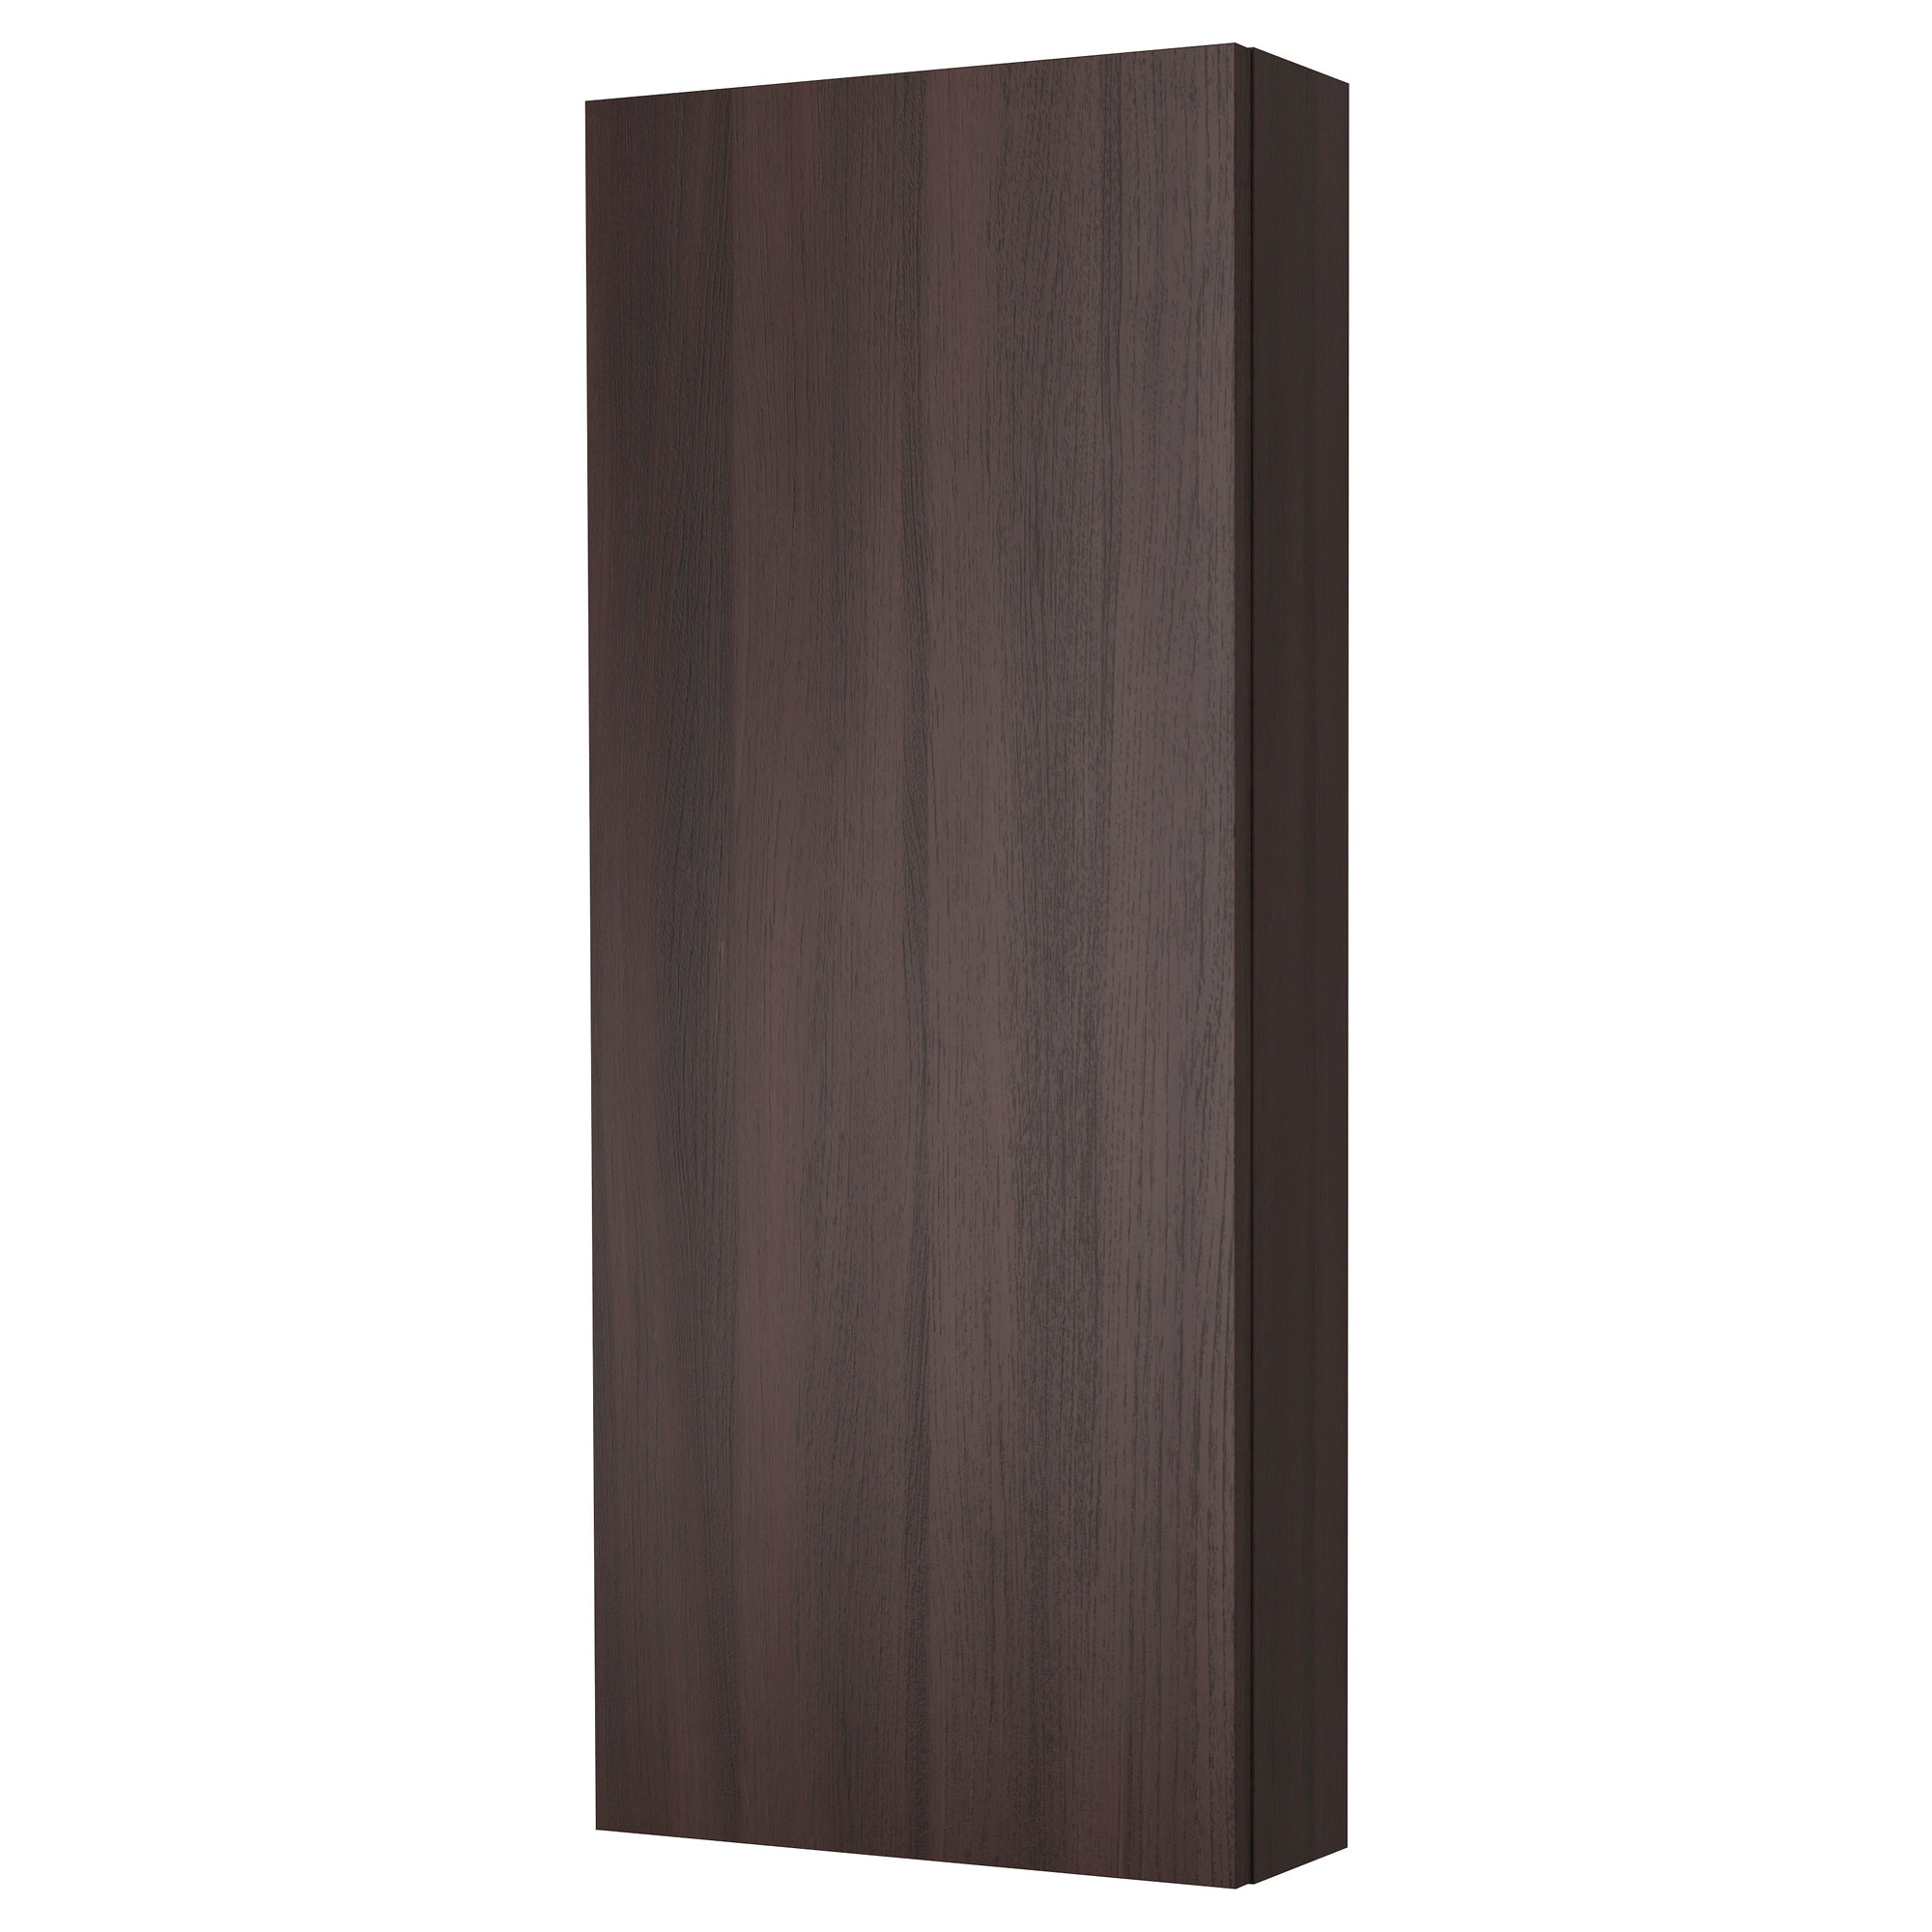 Charmant GODMORGON Wall Cabinet With 1 Door   Black Brown   IKEA